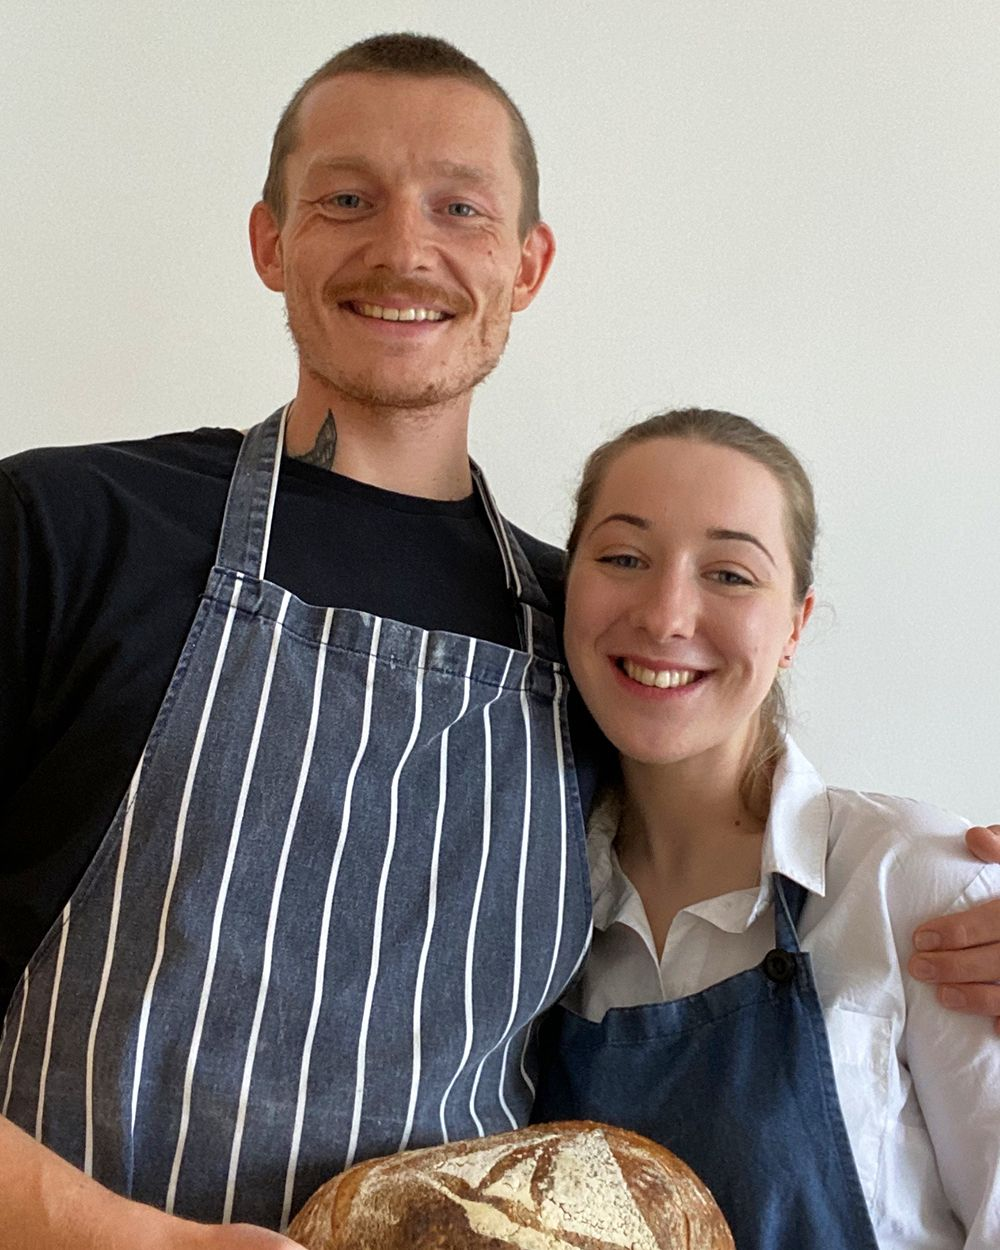 Andrew Ishmael and Beth Hannan, owners of The Imperfect Bakery.